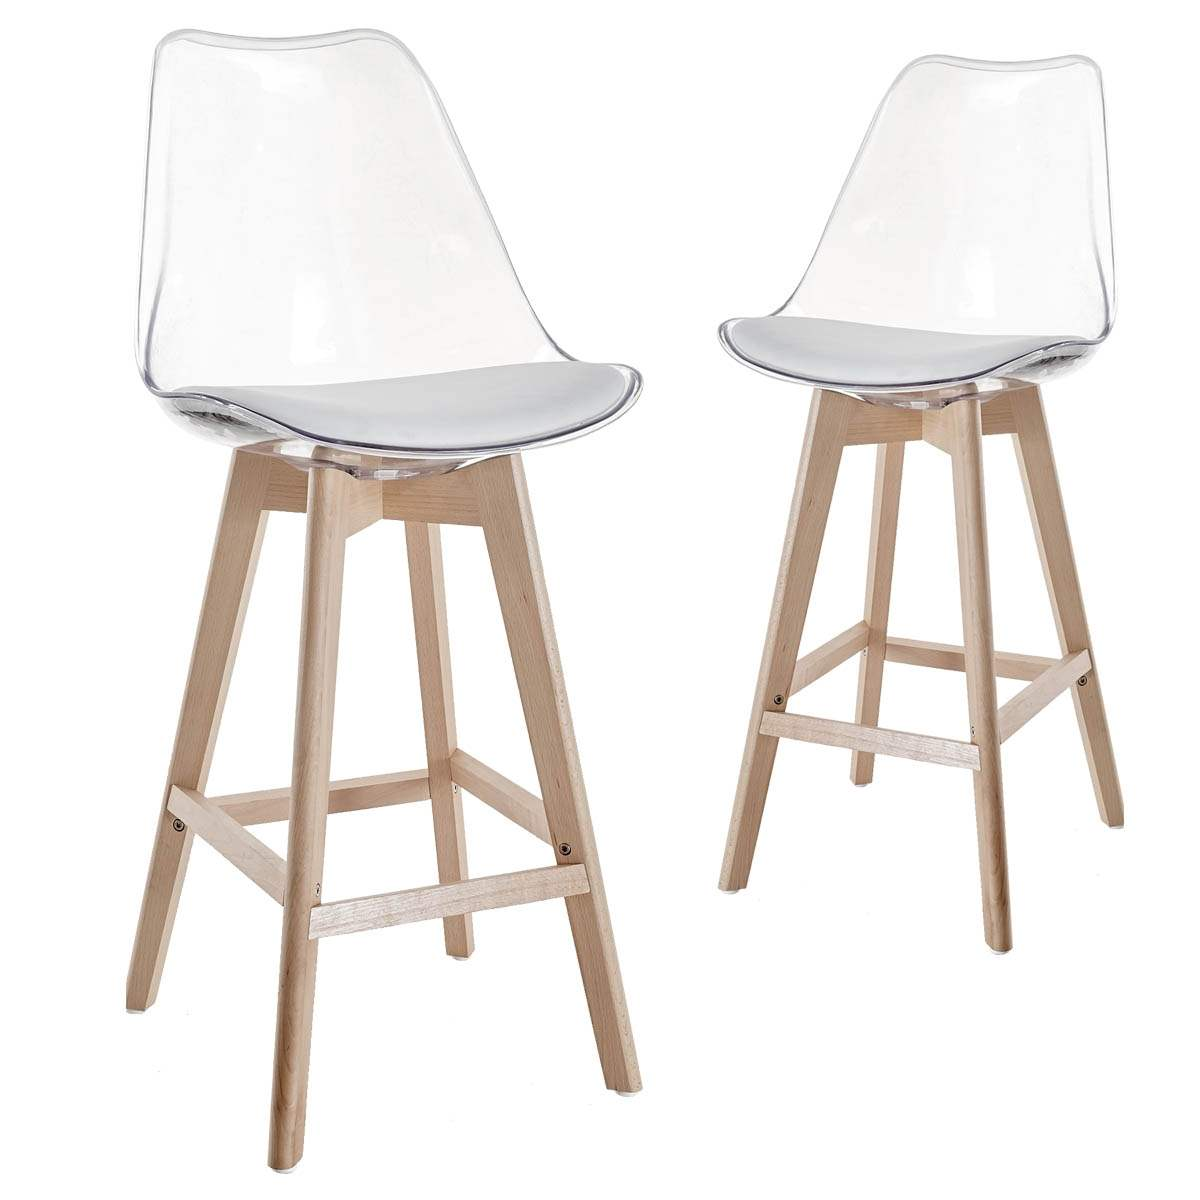 Tabourets De Bar Transparents Deco In Paris Lot De 2 Tabourets De Bar Scandinaves